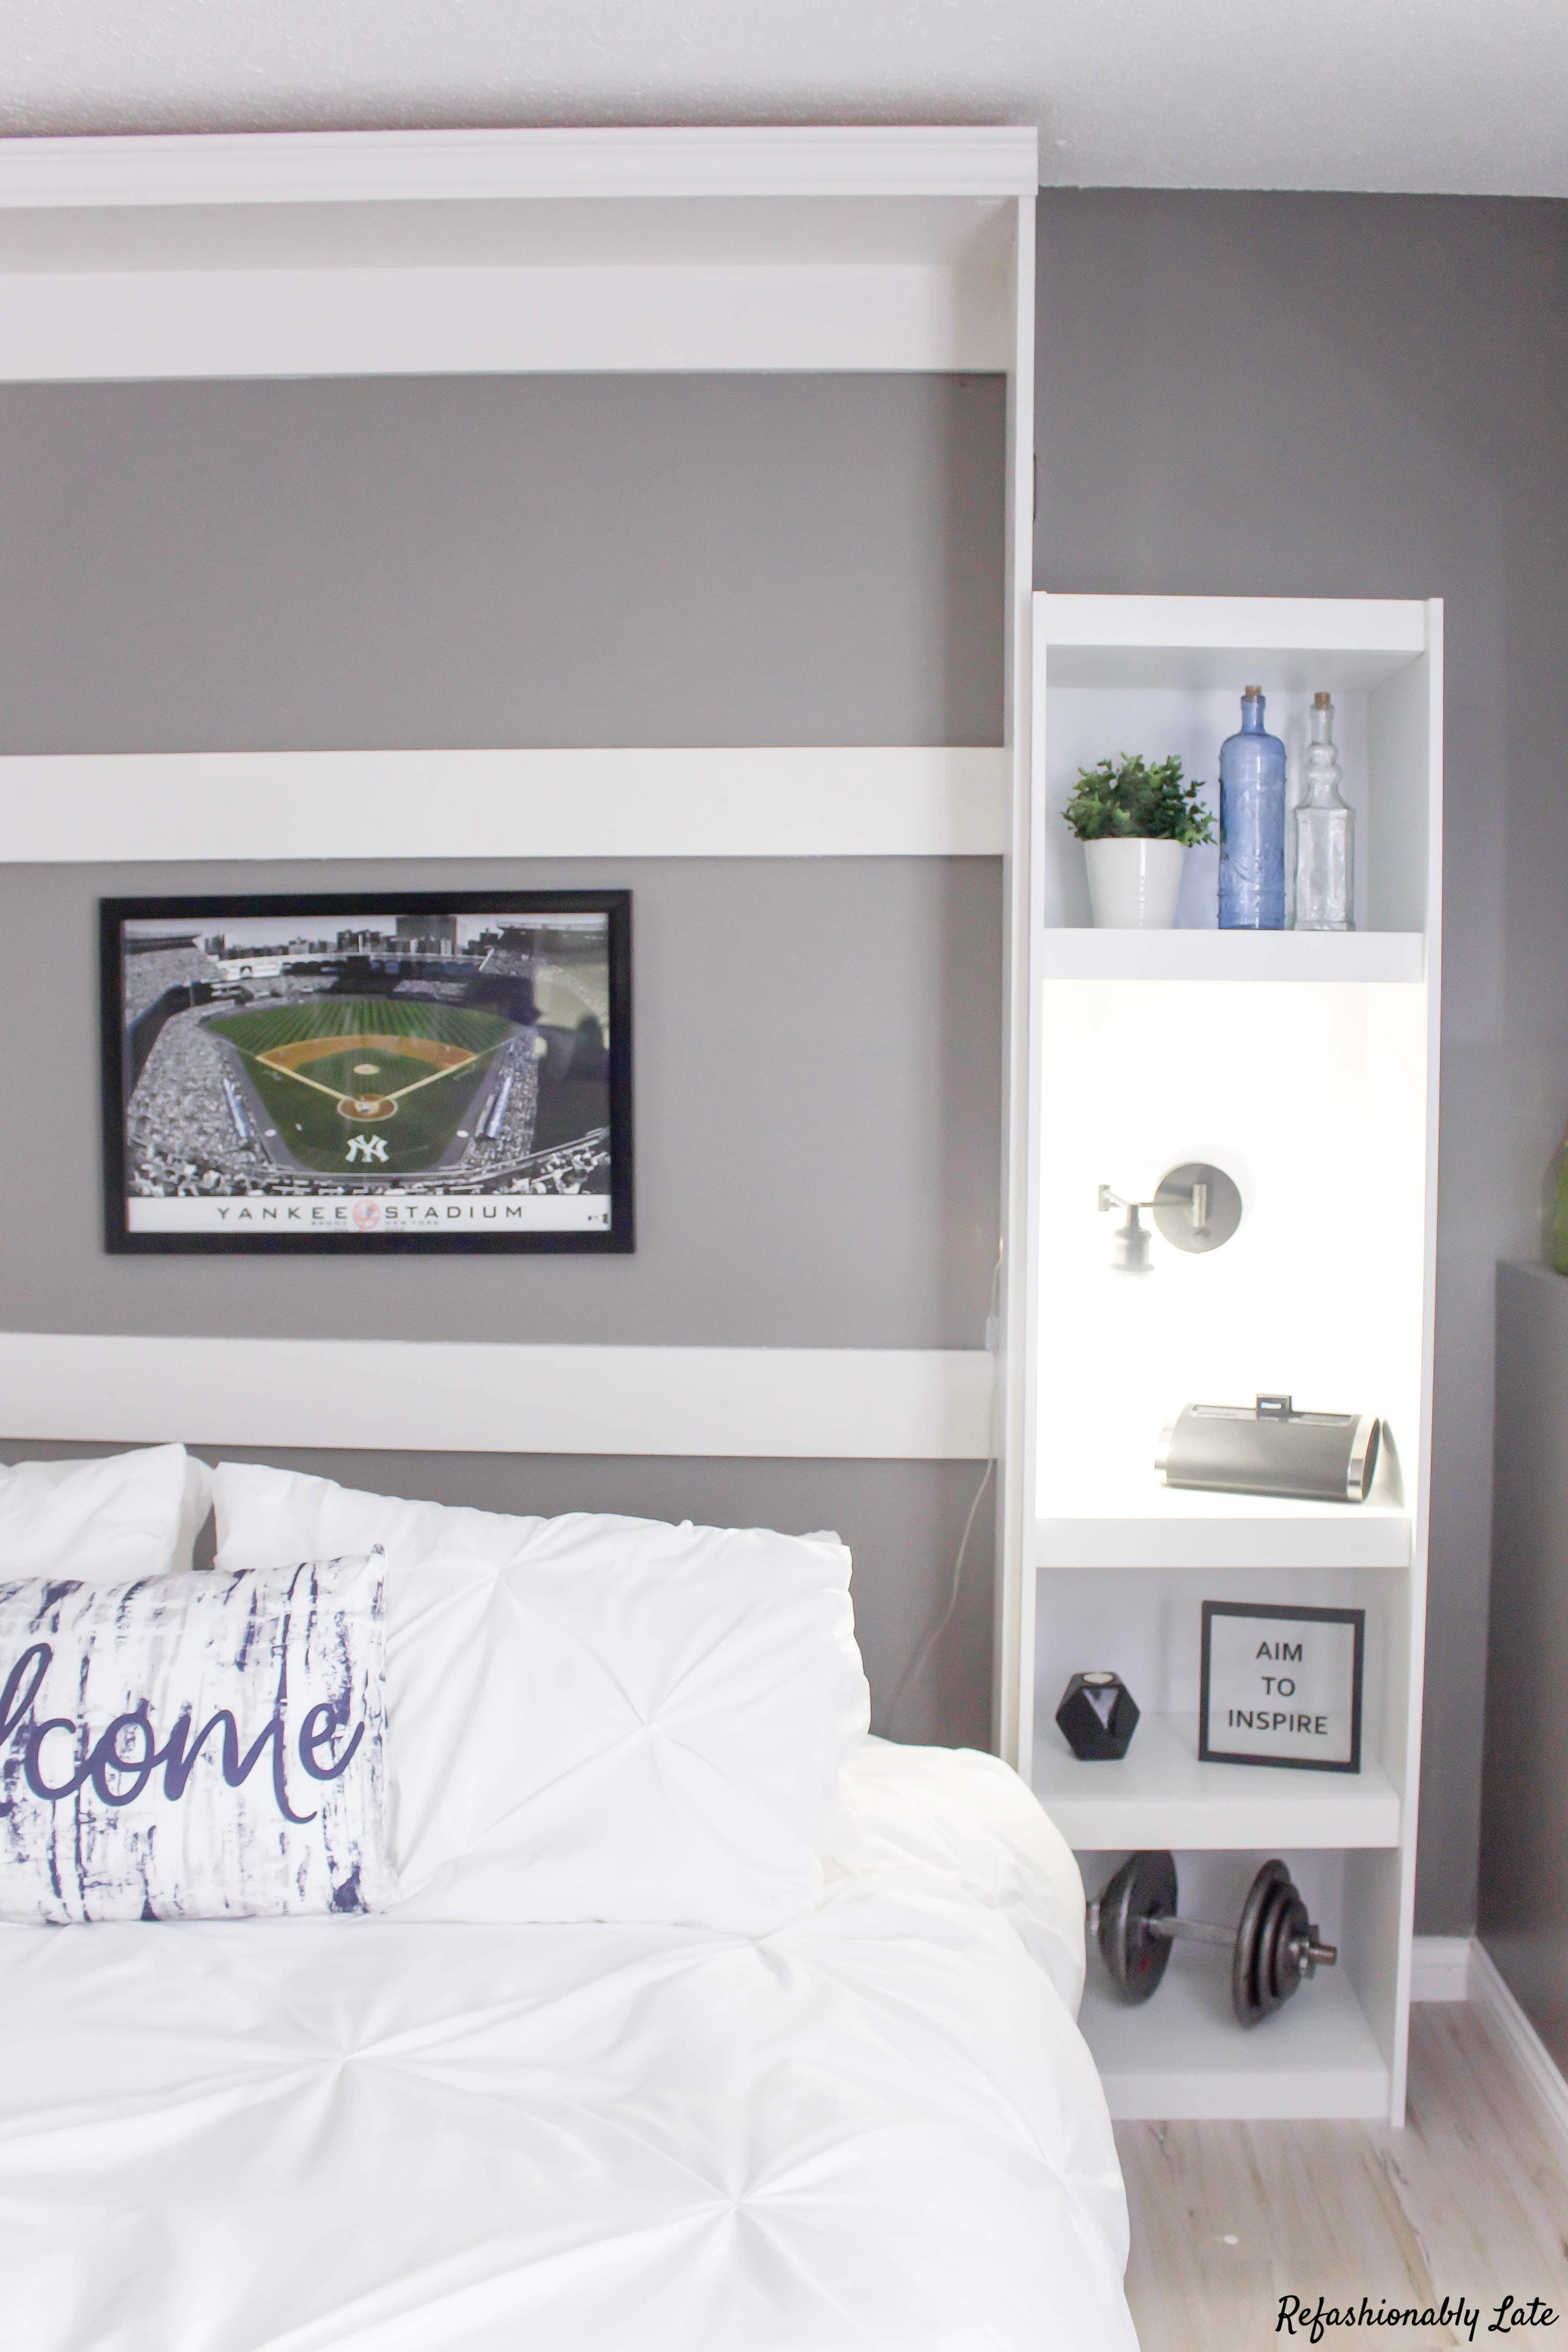 murphy bed folded down with a pillow with the text welcome and one shelf with aim to inspire picture and light on